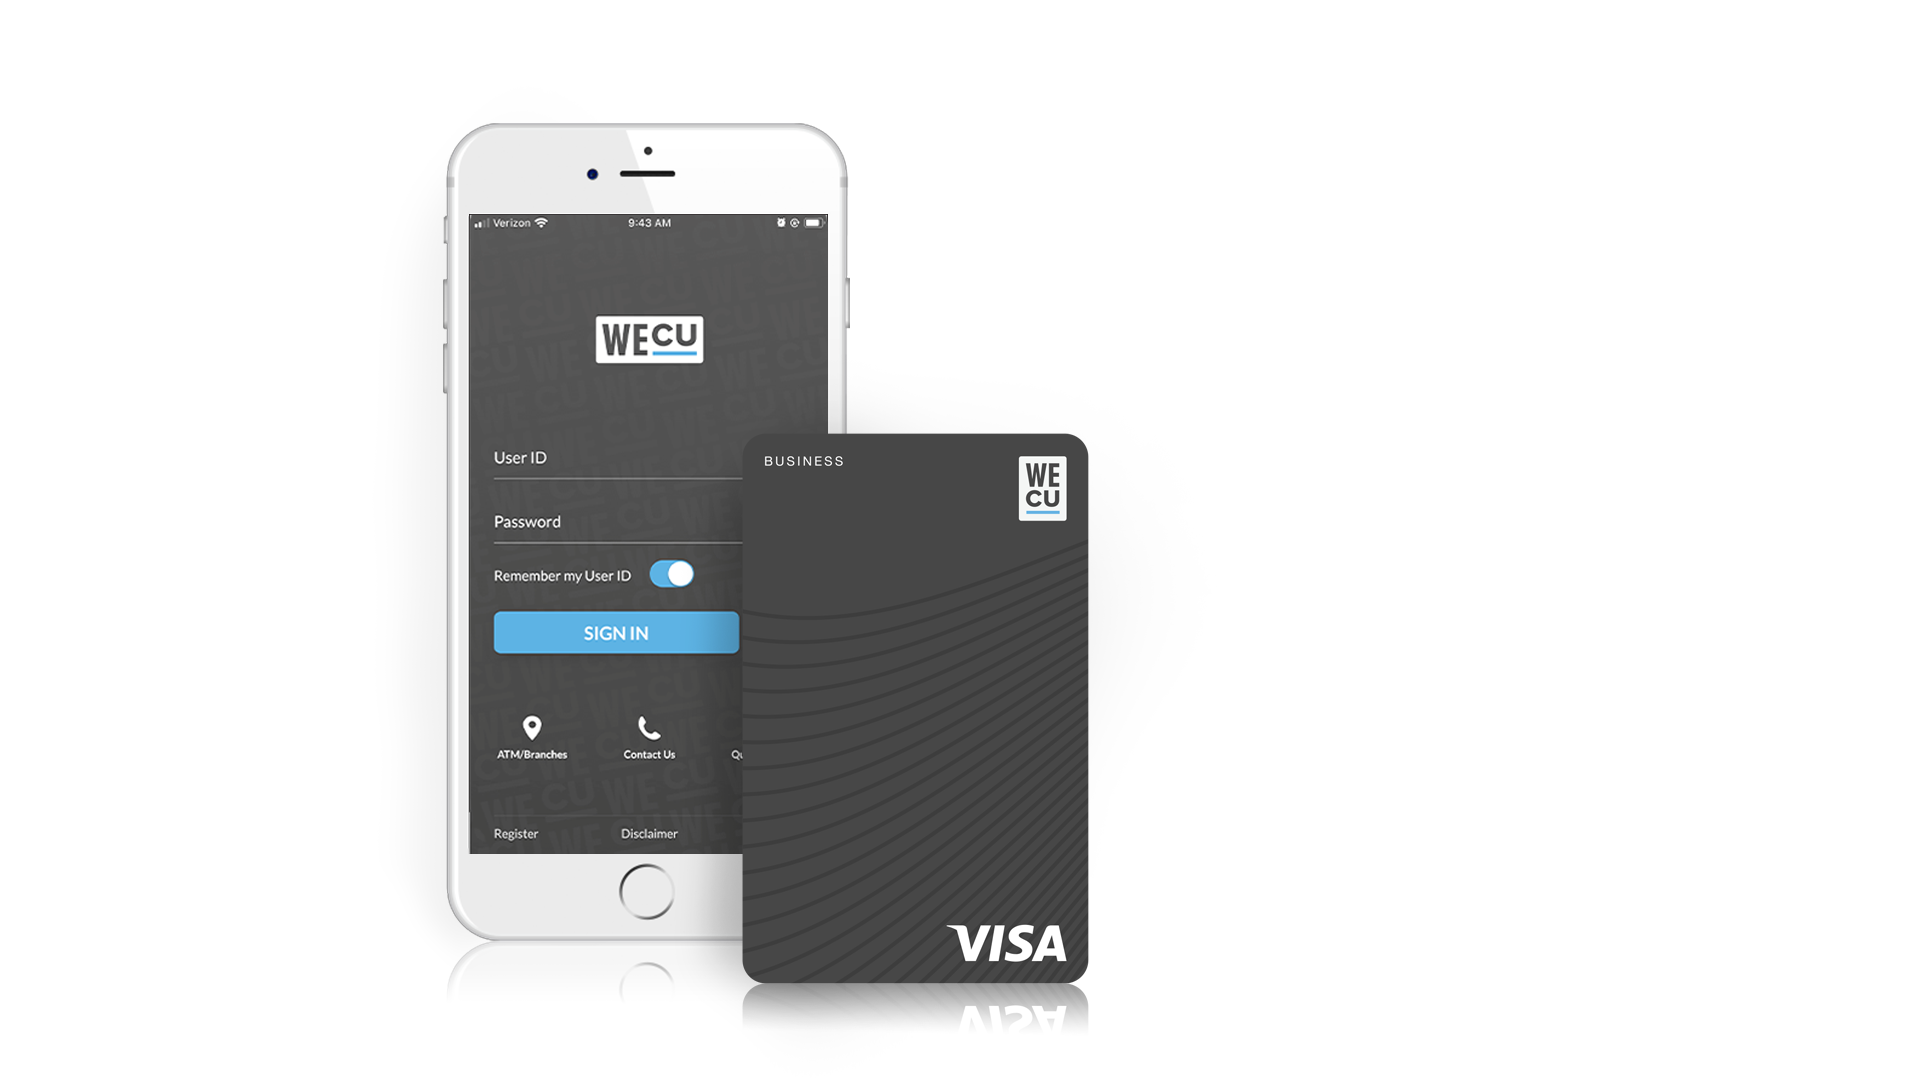 The WECU business visa credit card next to a phone displaying the WECU mobile app.